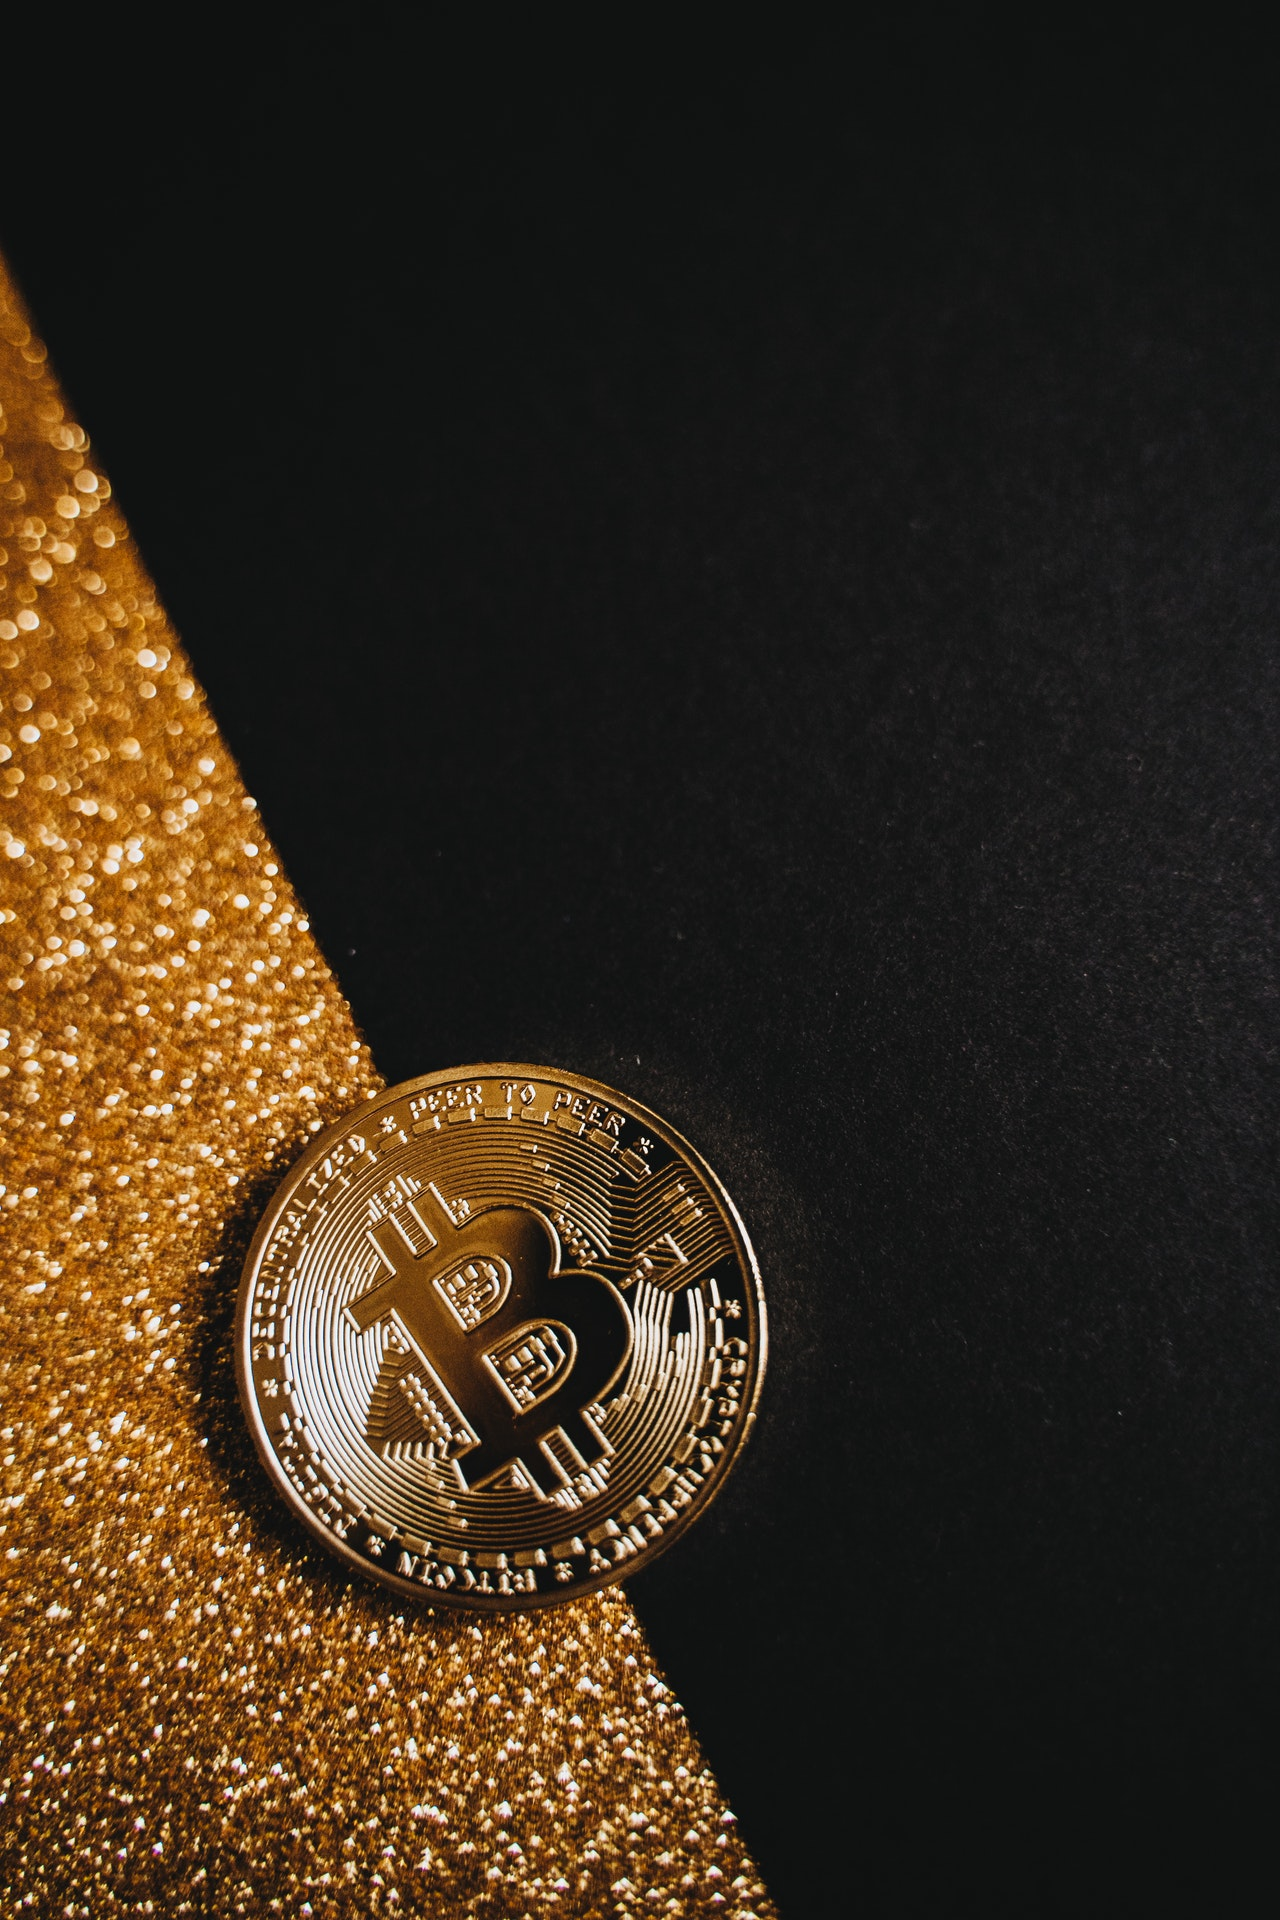 Bitcoin Investment Critical Article Image